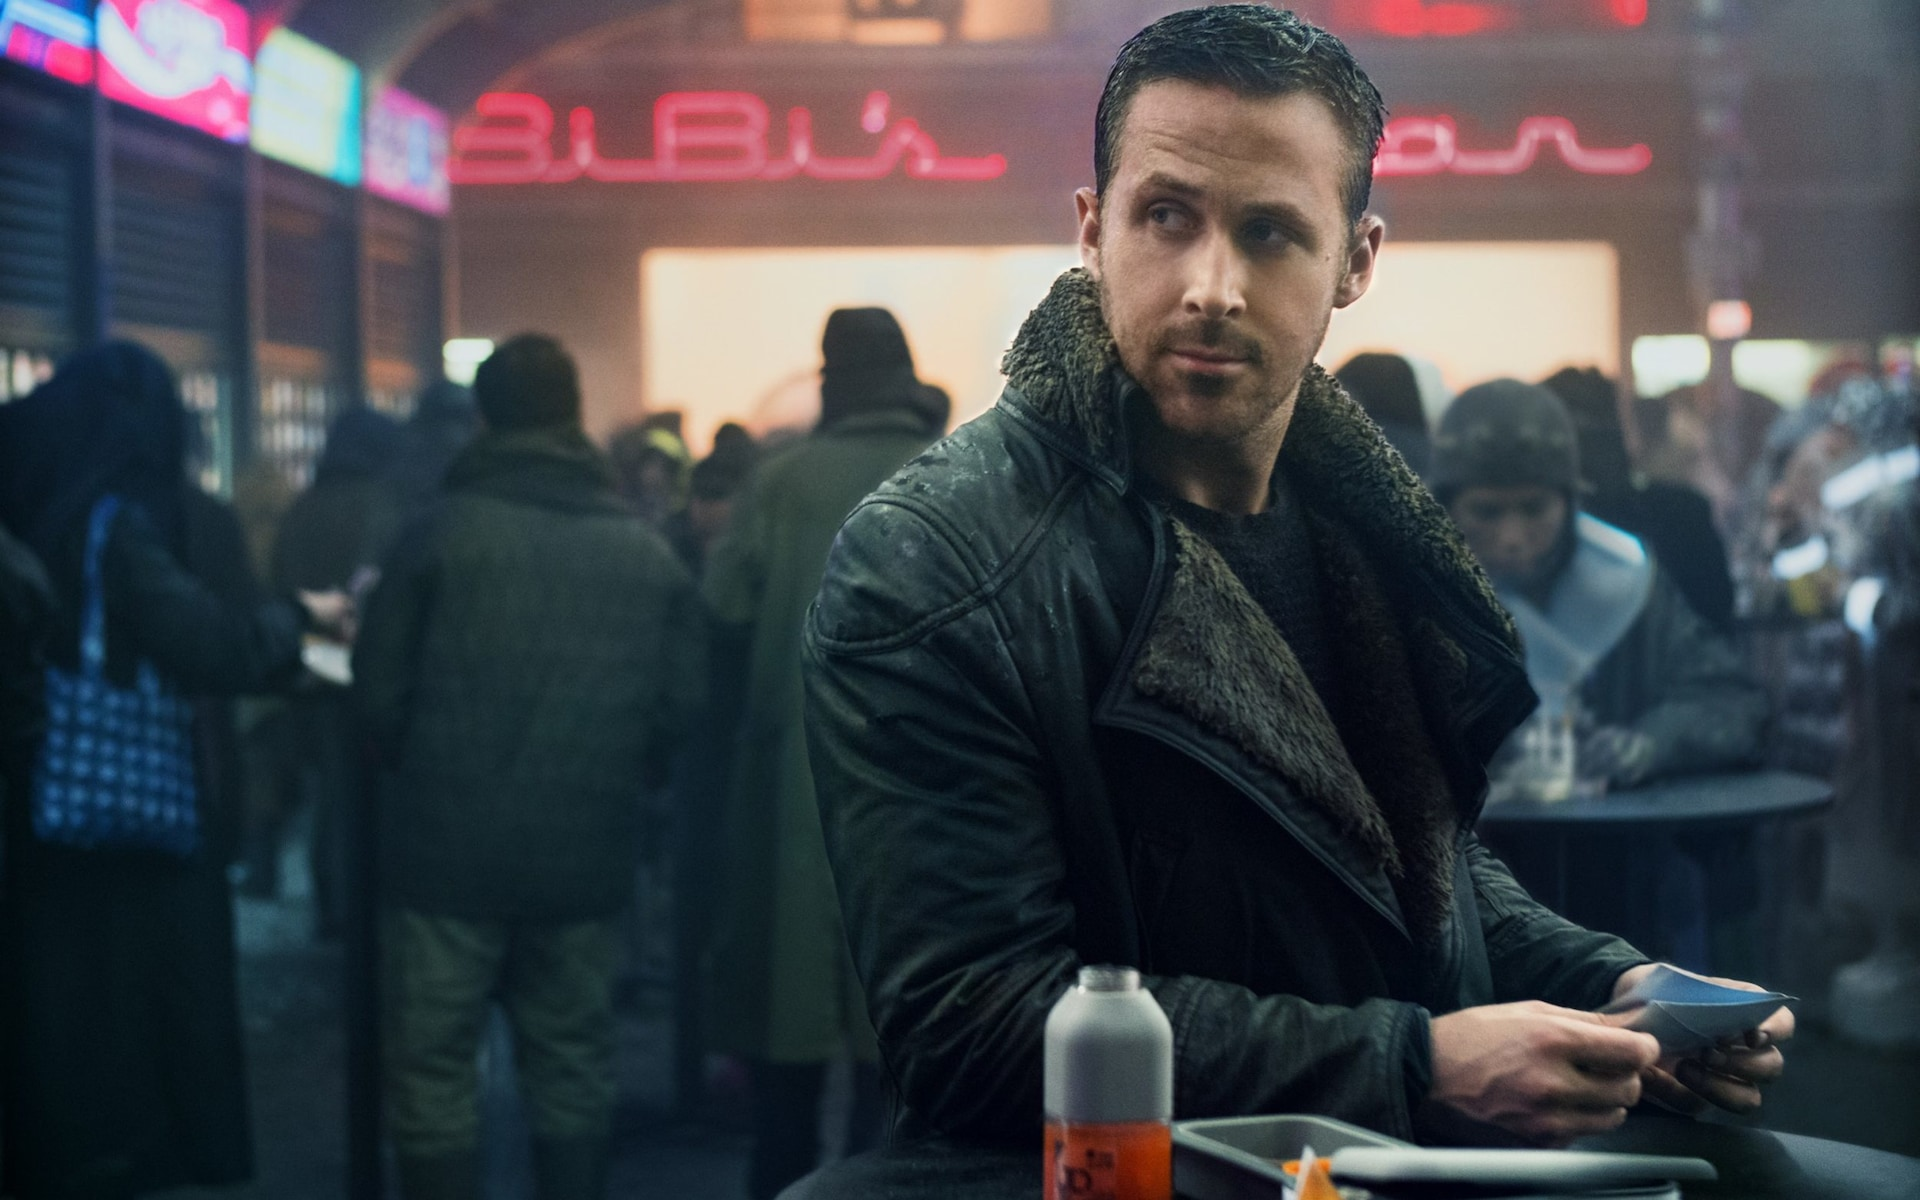 Review: Blade Runner 2049 is a beautiful, confounding experience download stream spoilers ending explained 2017 bad feeling ryan gosling